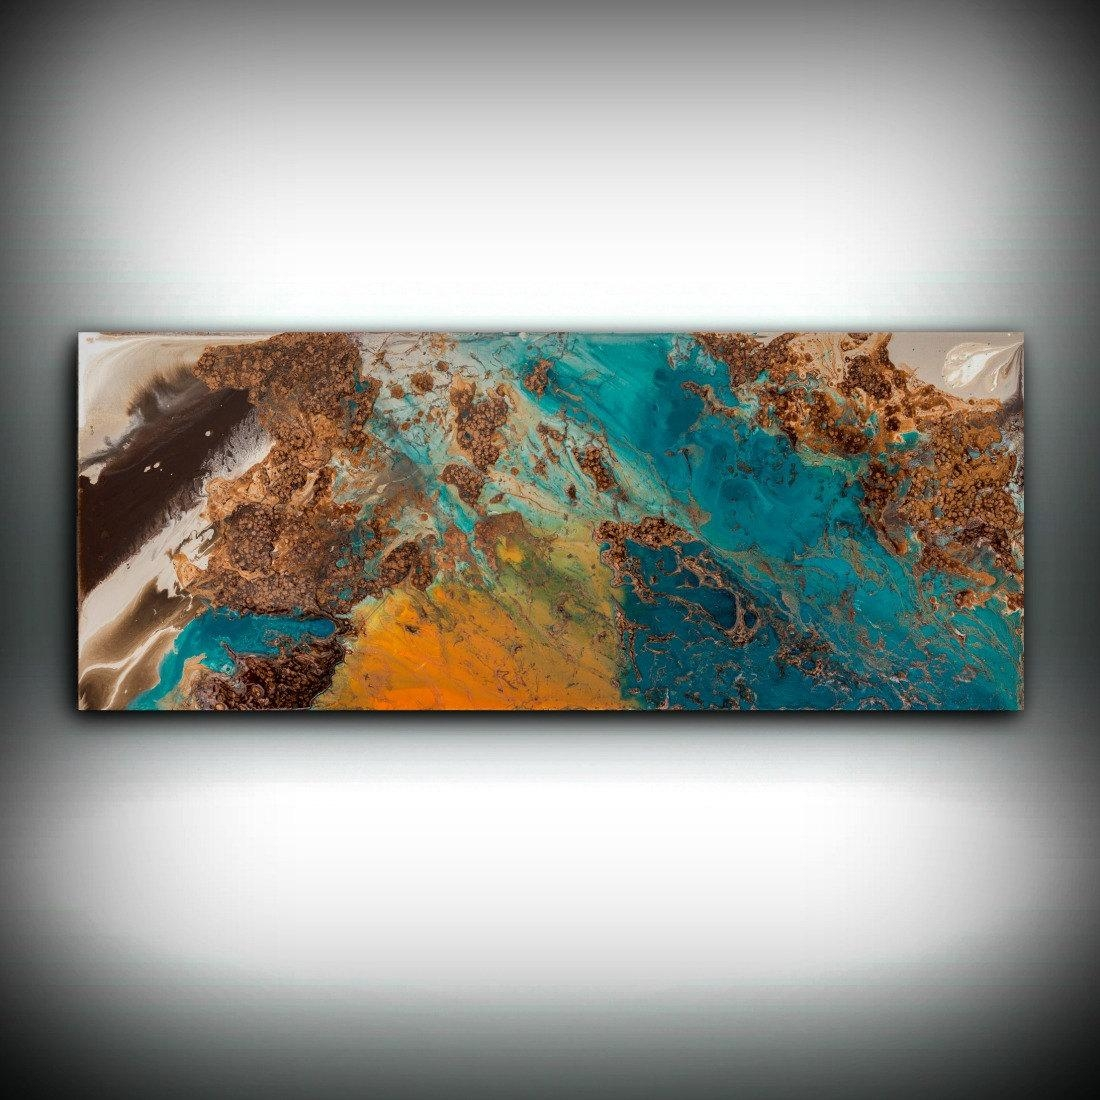 Sale Blue And Copper Art, Wall Art Prints Fine Art Prints Abstract Regarding Brown And Turquoise Wall Art (Image 10 of 20)